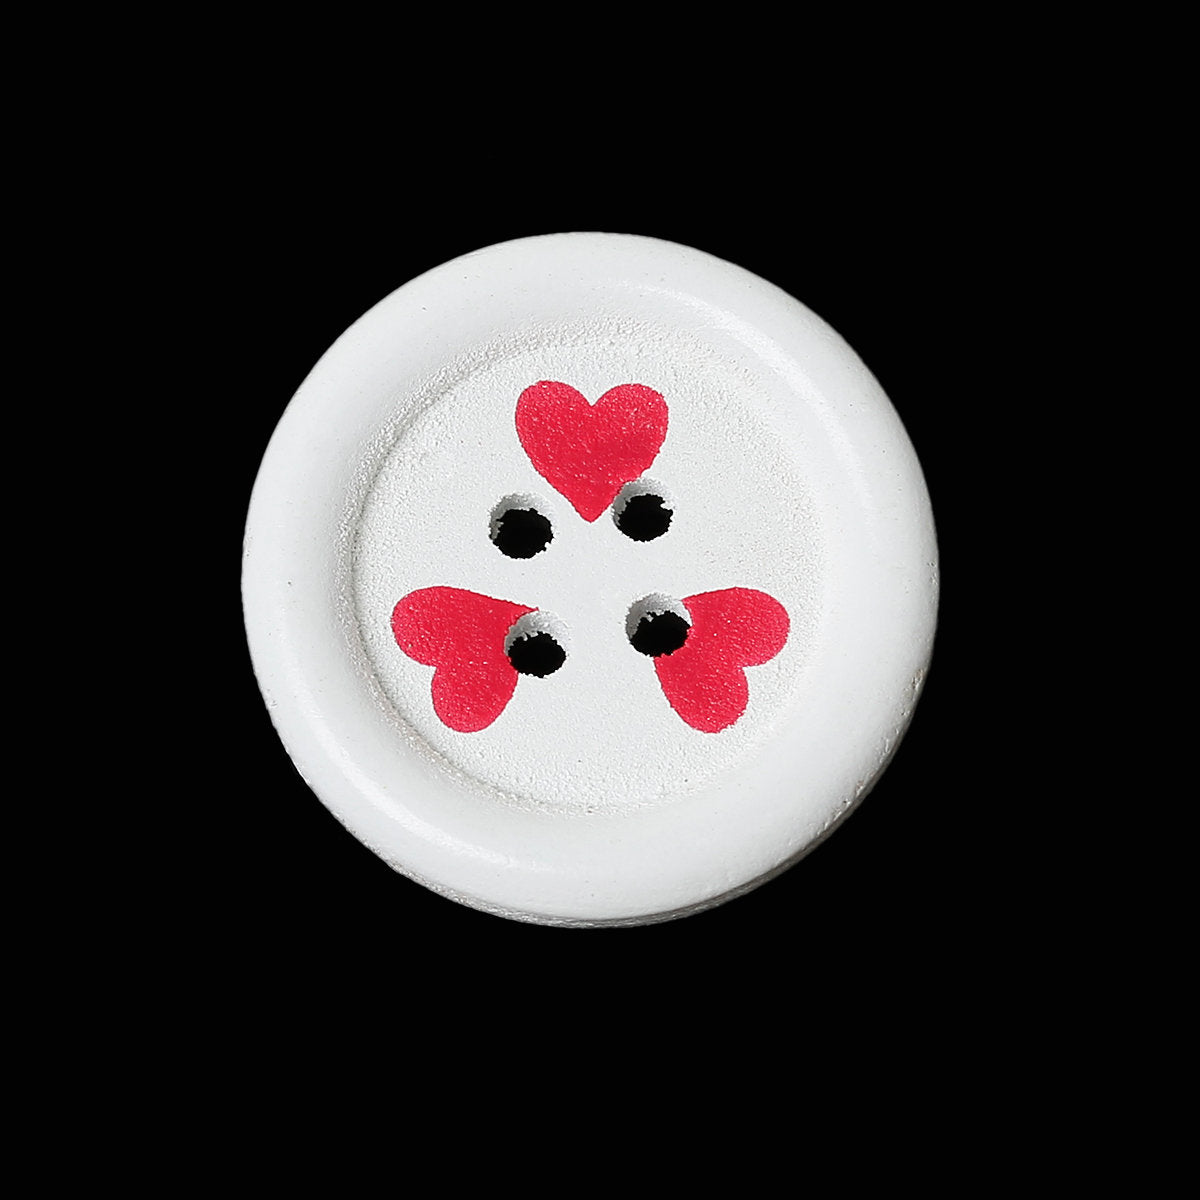 Wooden Buttons - White with Red Hearts Valentine's - 23mm (Approx 1 inch) - 4 Holes